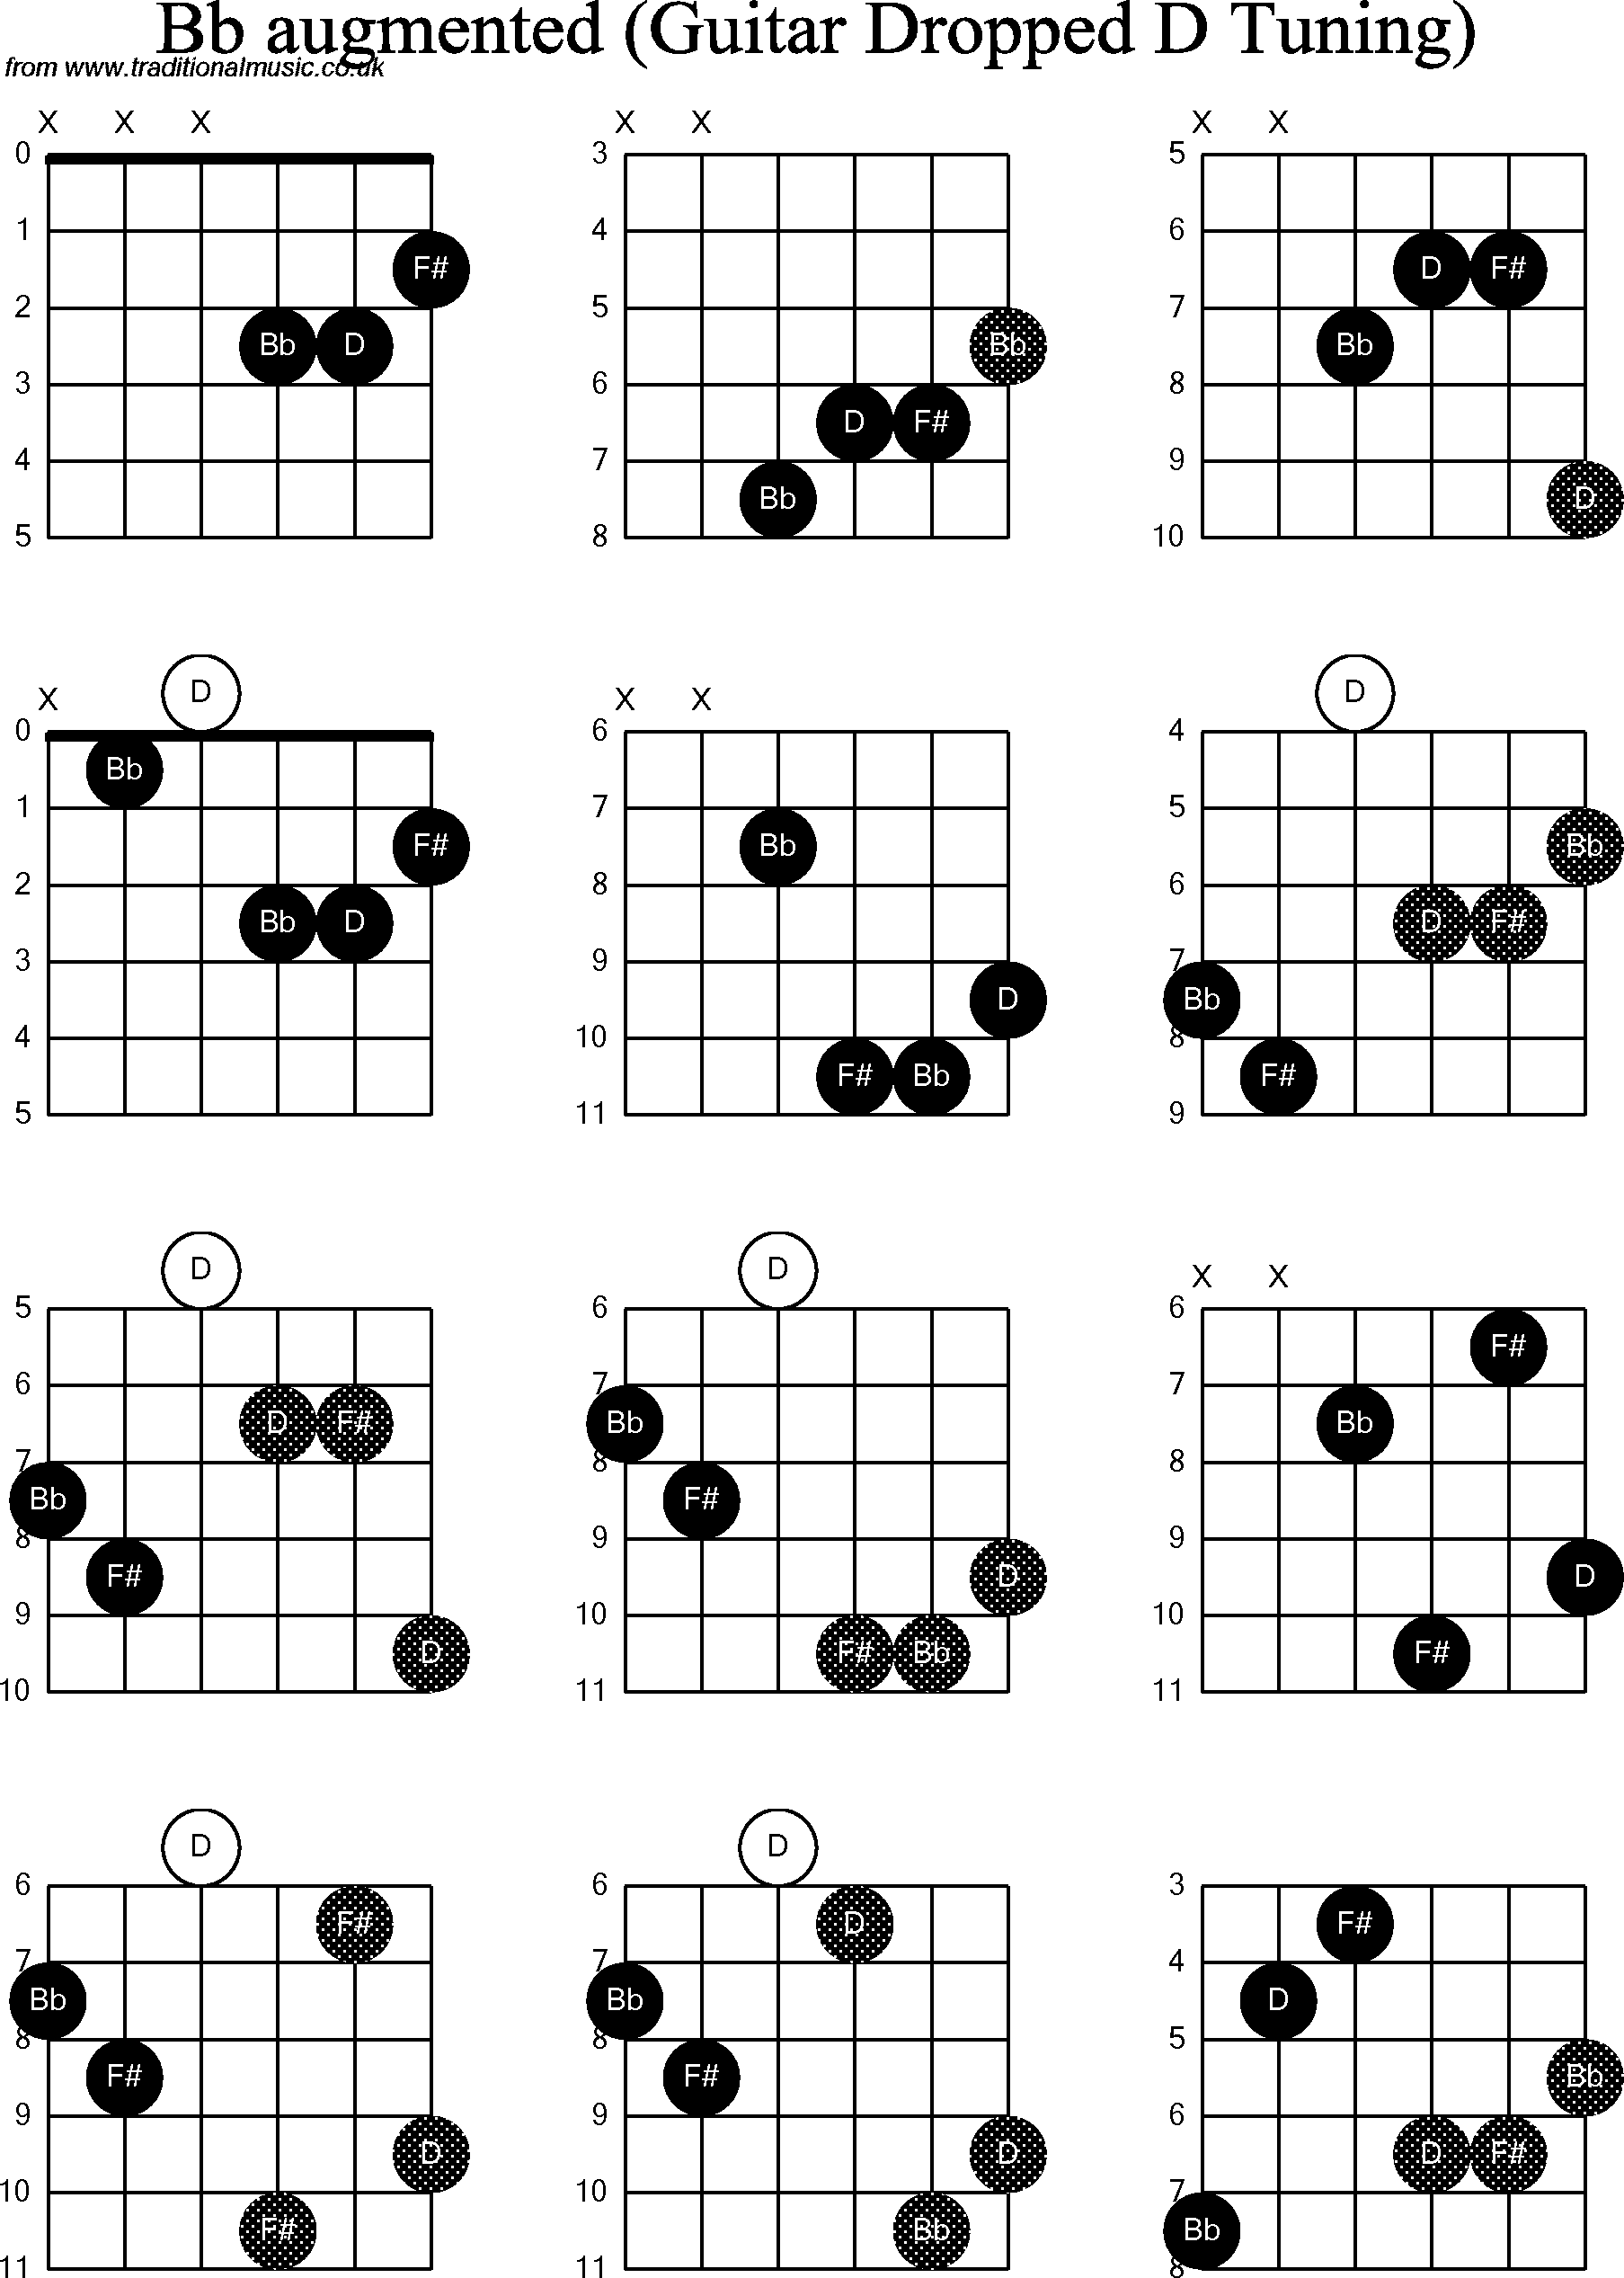 Chord diagrams for dropped d guitardadgbe bb augmented chord diagrams for dropped d guitardadgbe bb augmented hexwebz Image collections